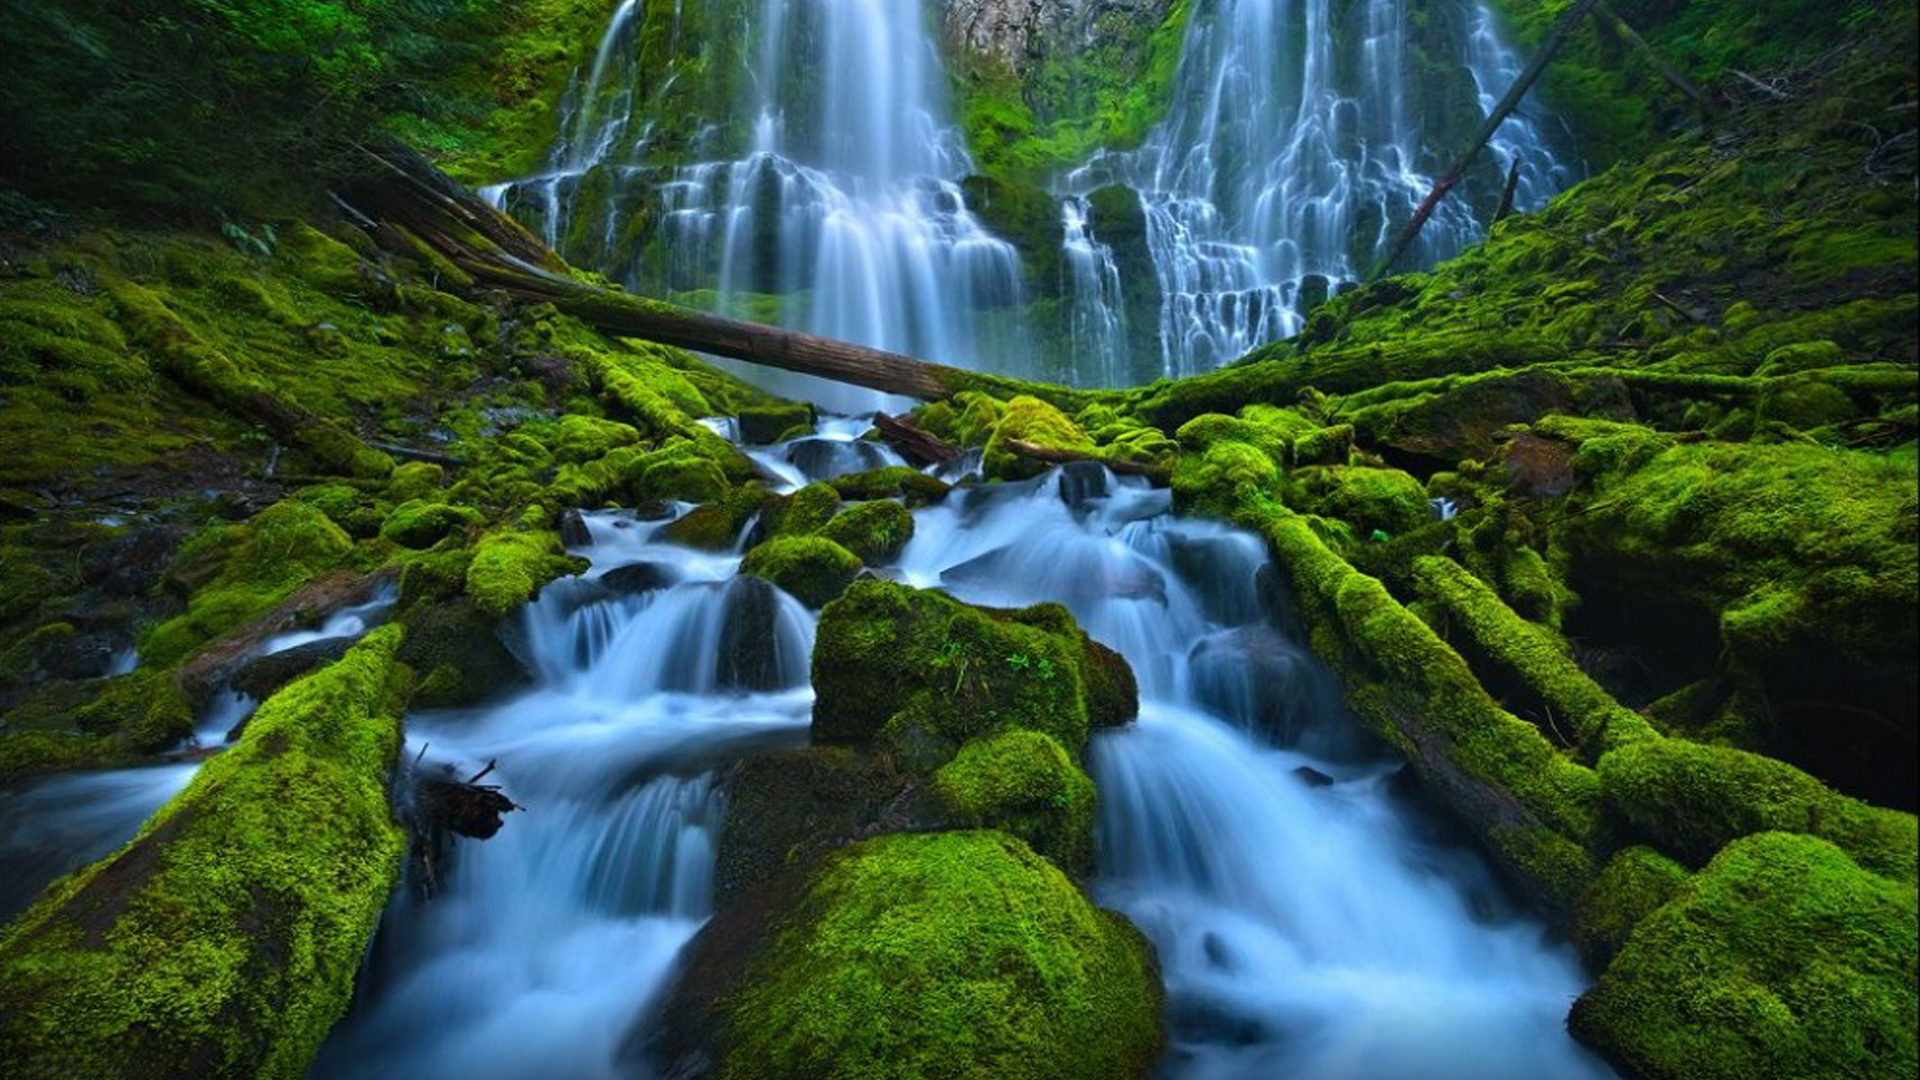 Free Animated Wallpaper For Android Tablet Beautiful Waterfall Rocks Green Moss Proxy Falls Eugene